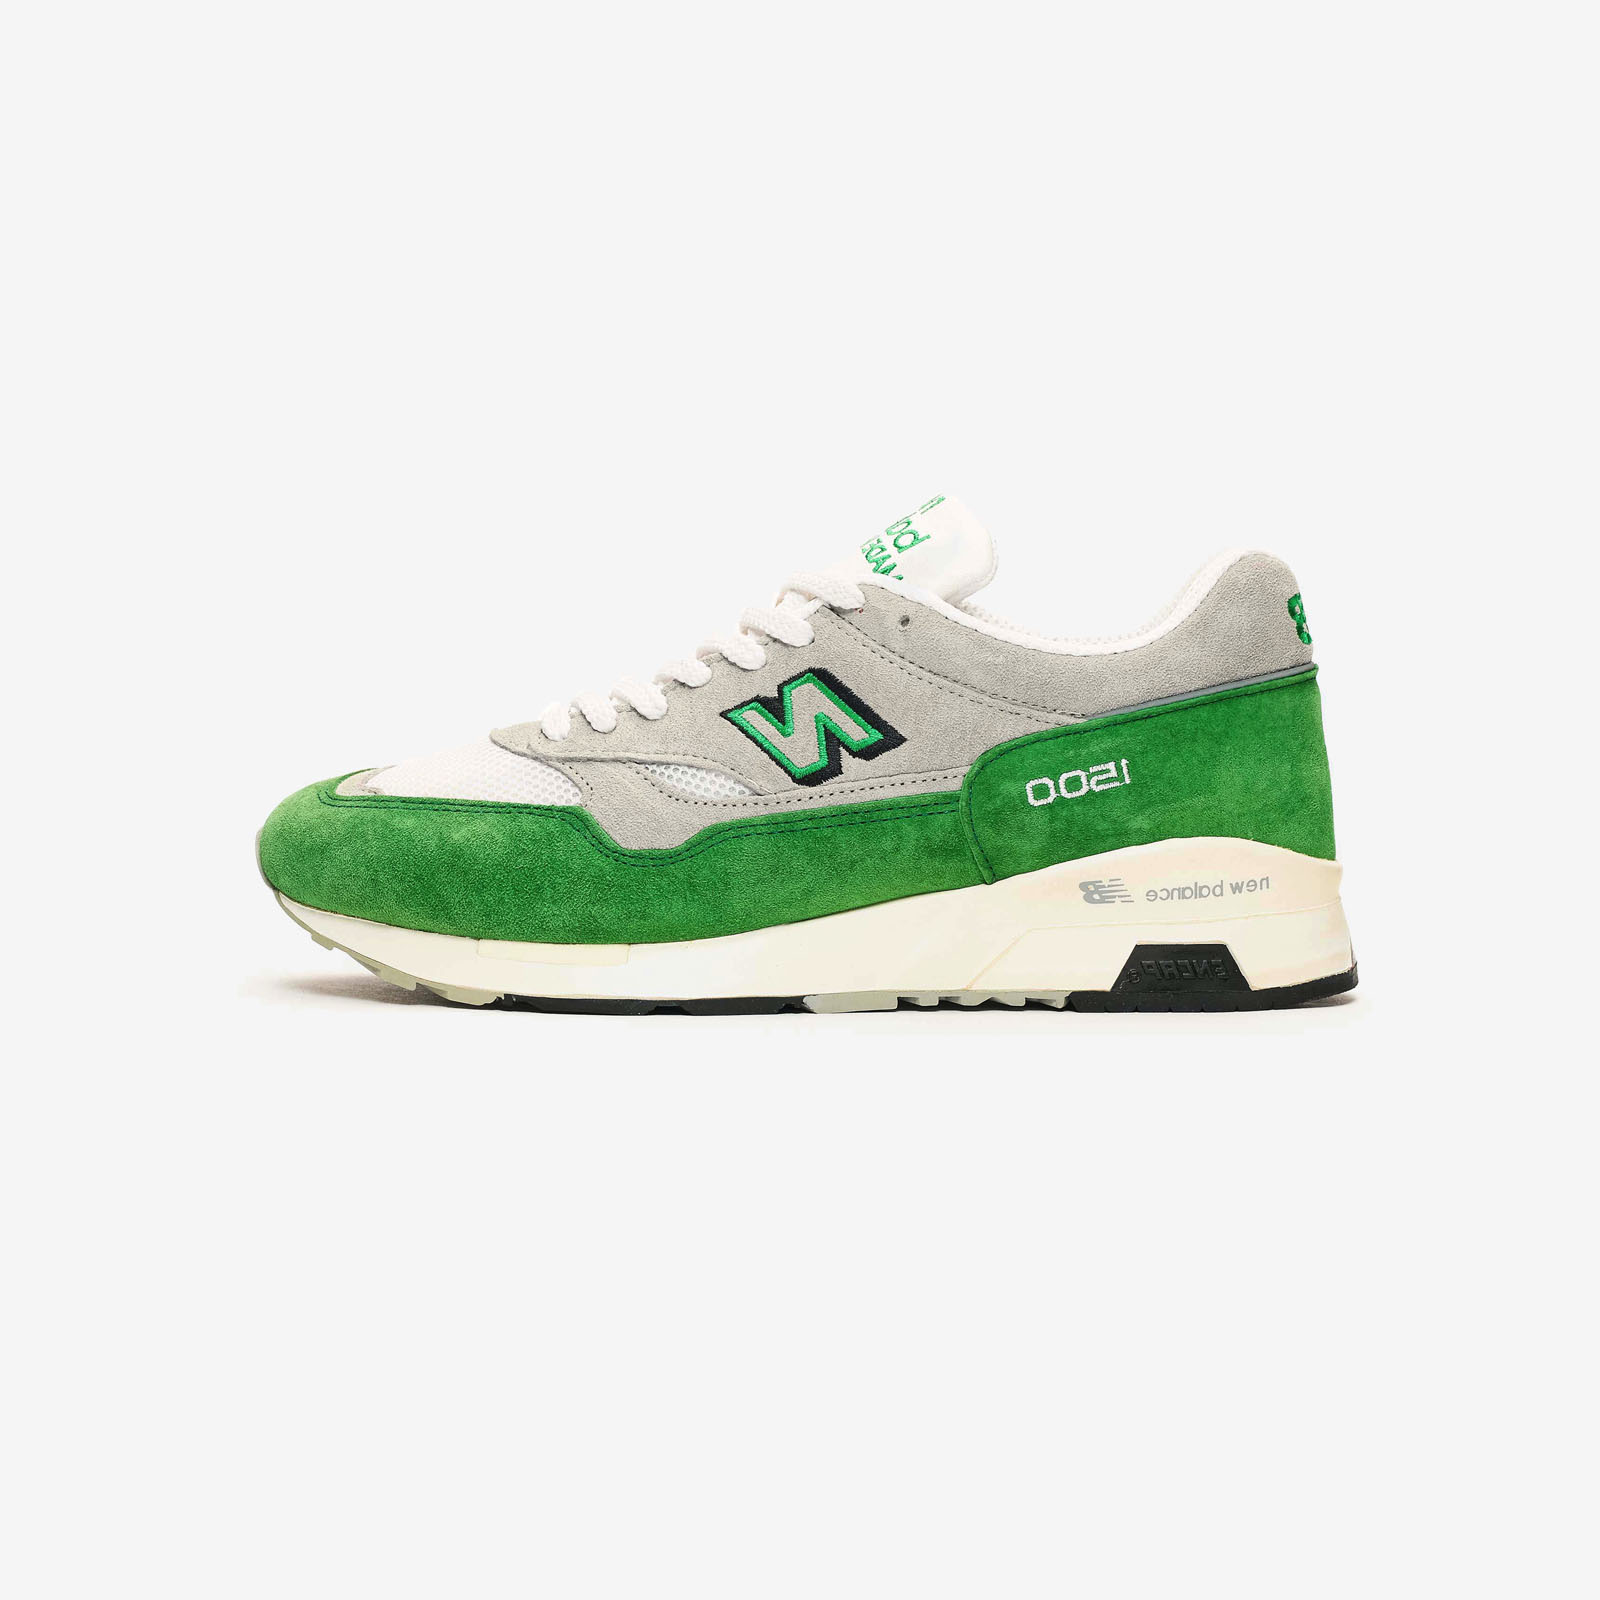 timeless design 376cd 3bd0a New Balance 1500 SNS - 81636 - Sneakersnstuff | sneakers ...